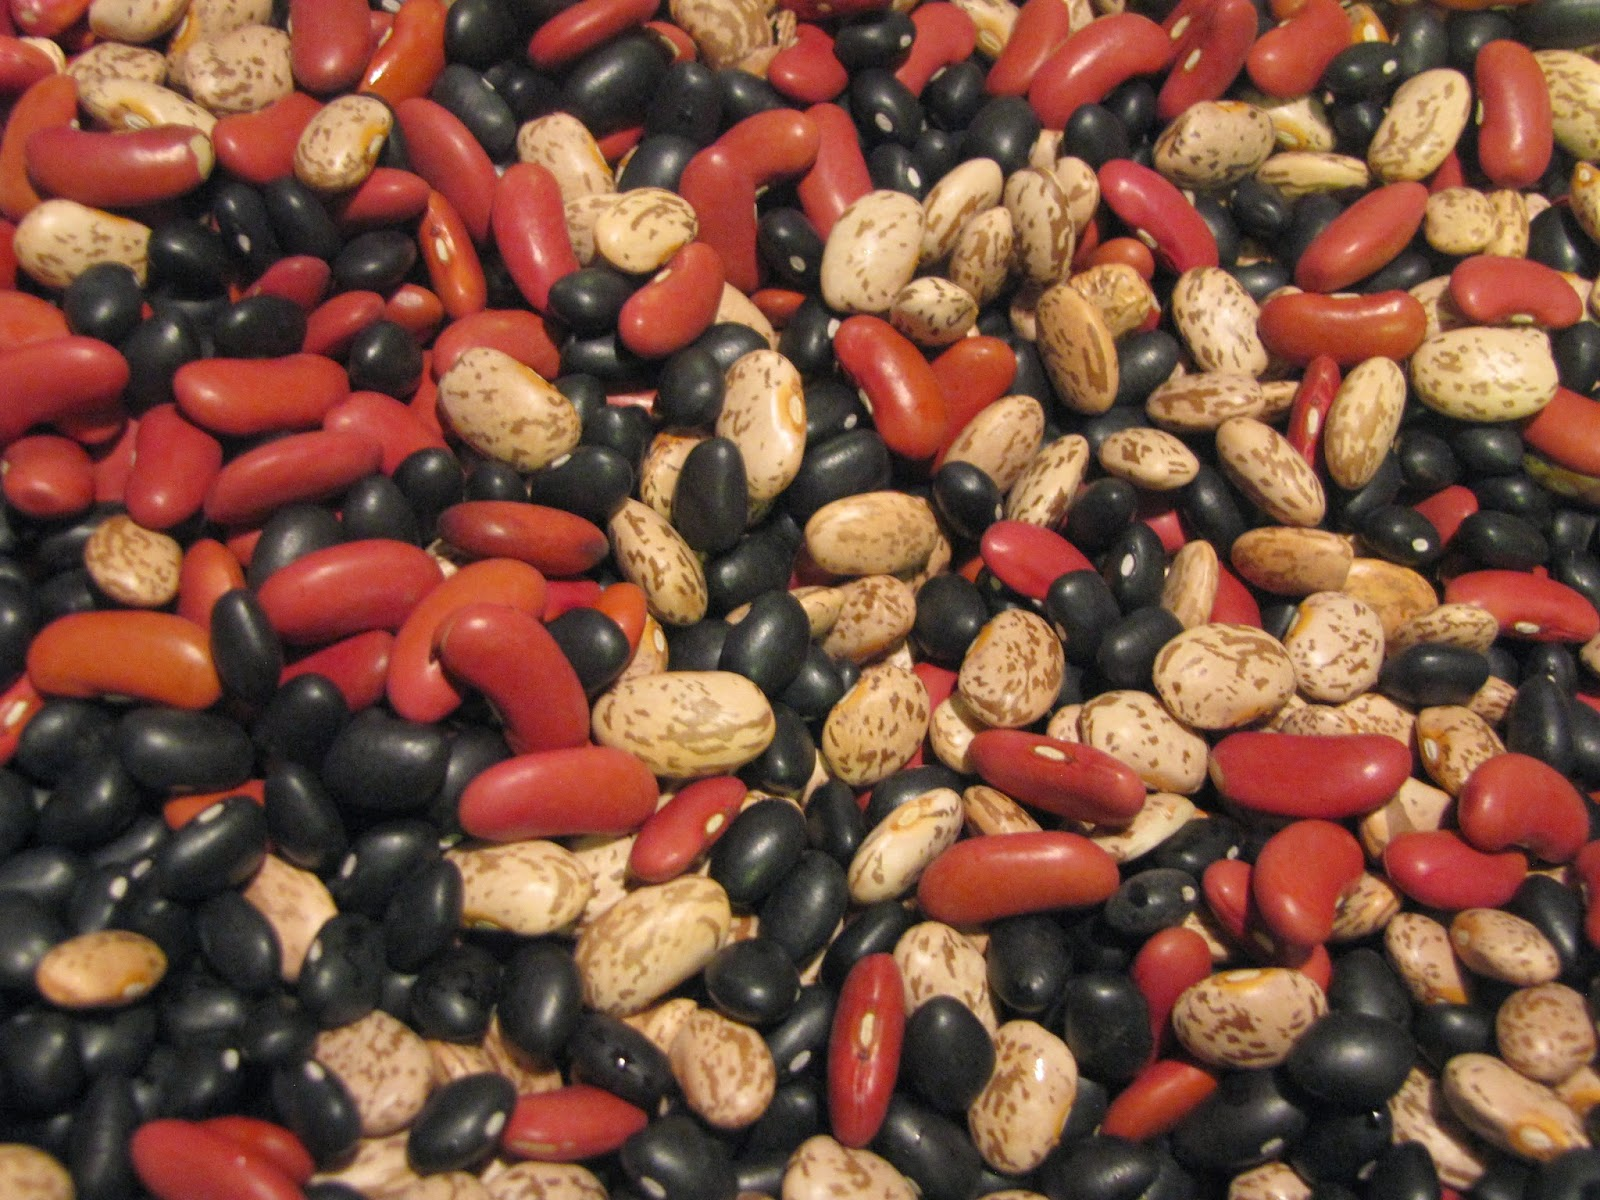 A mix of red kidney beans, pinto beans and black beans.